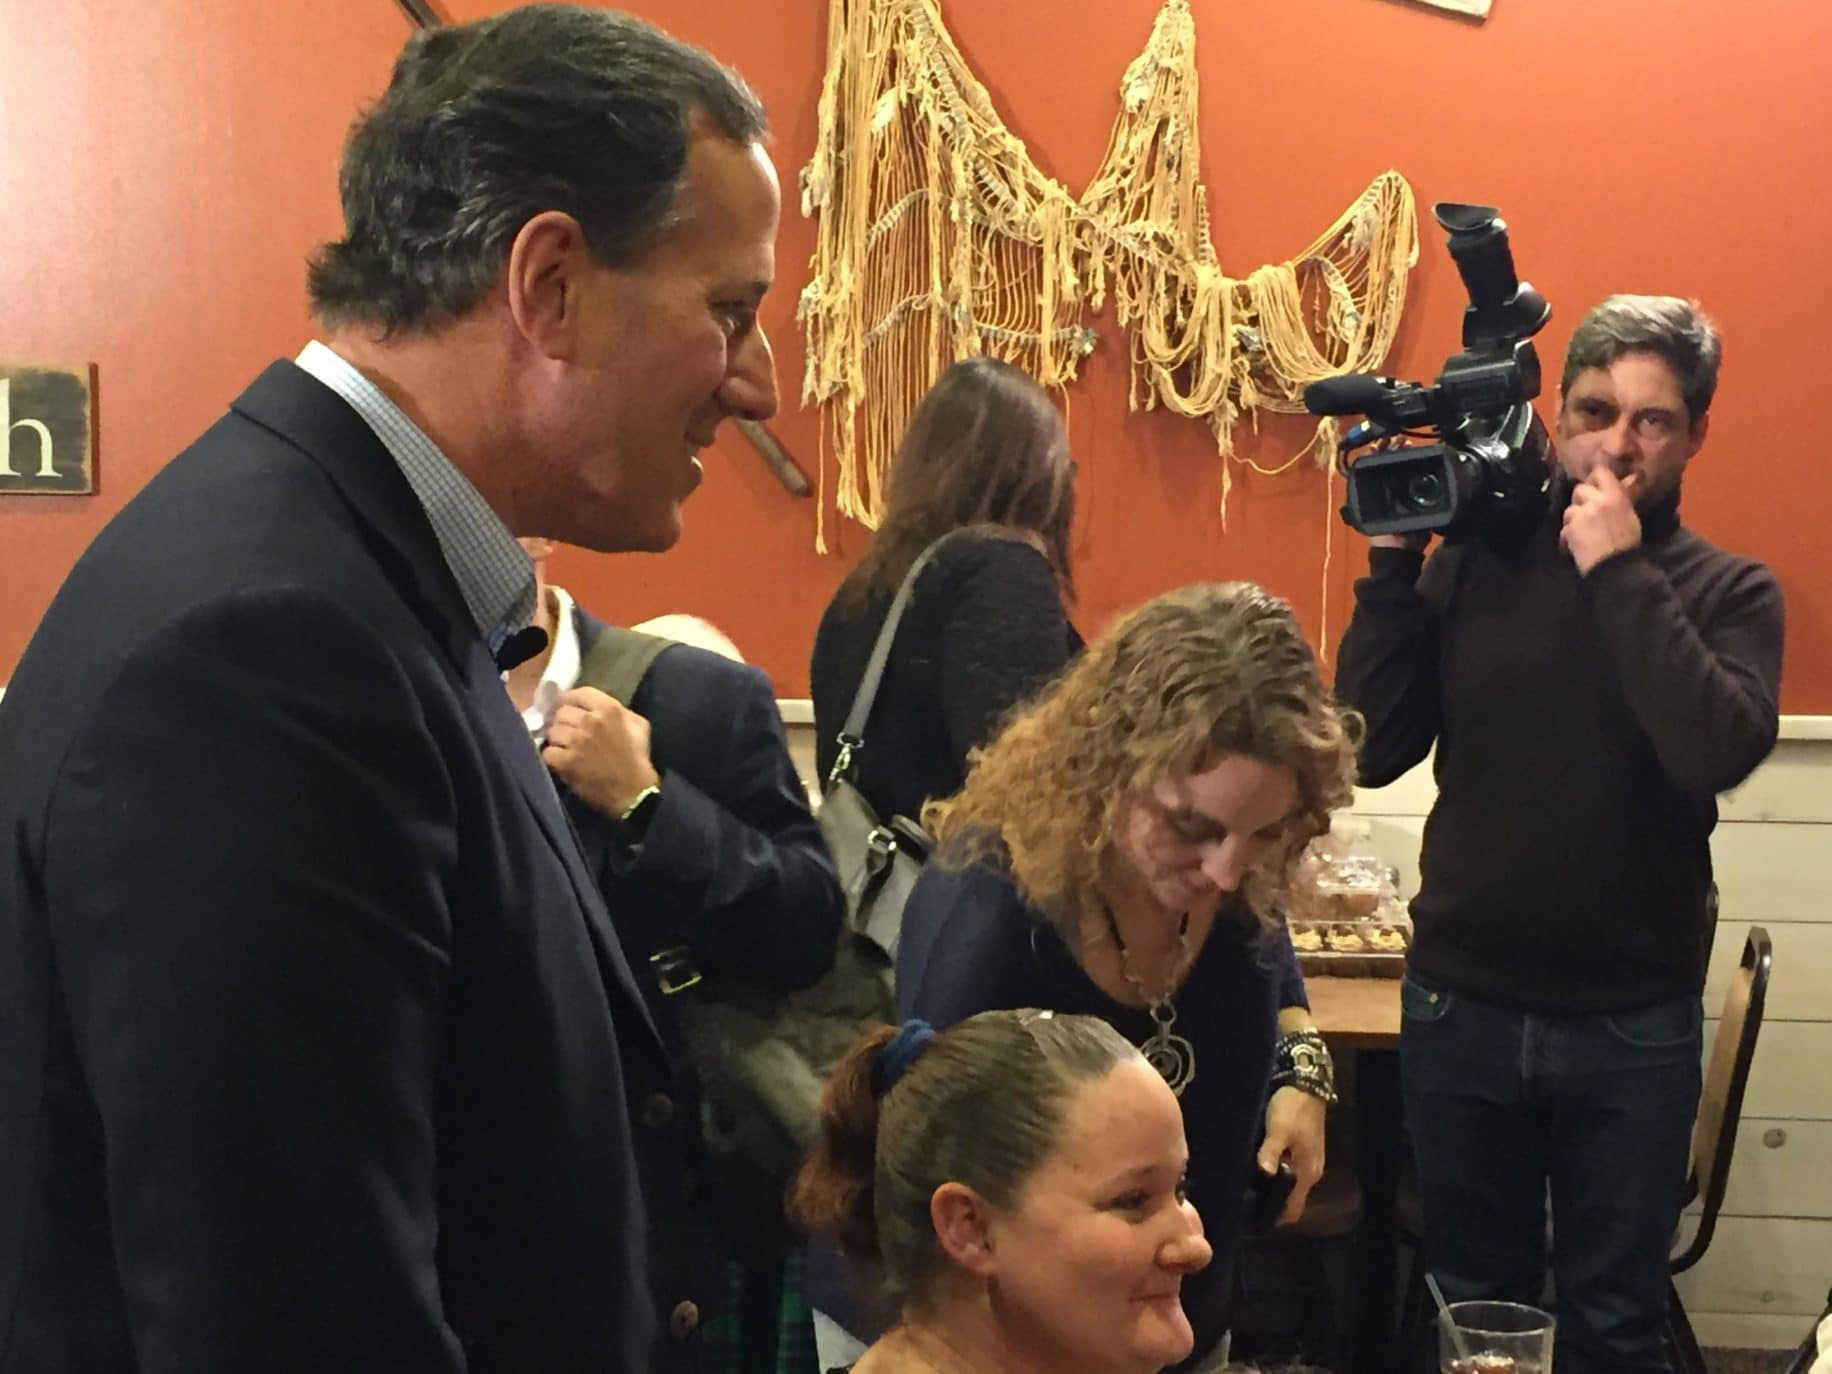 Rick Santorum campaigns at Pizza Ranch in Indianola, IA.